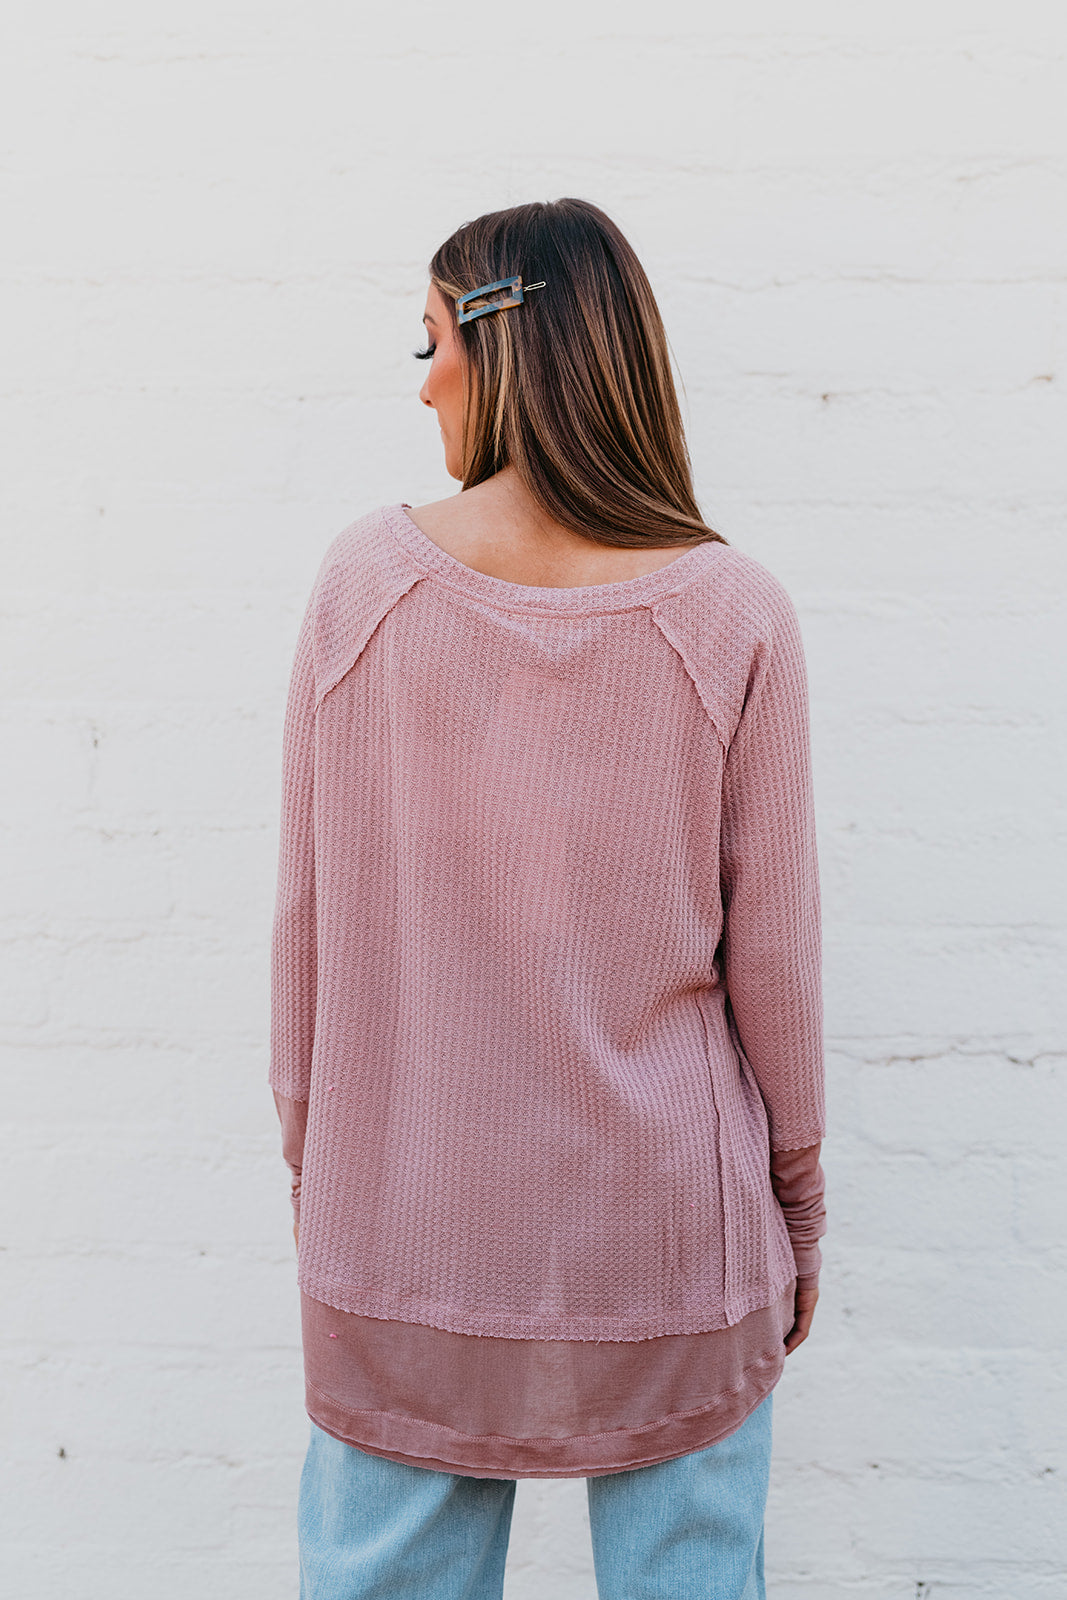 THE MANTHEY WAFFLE KNIT TOP IN DUSTY PINK